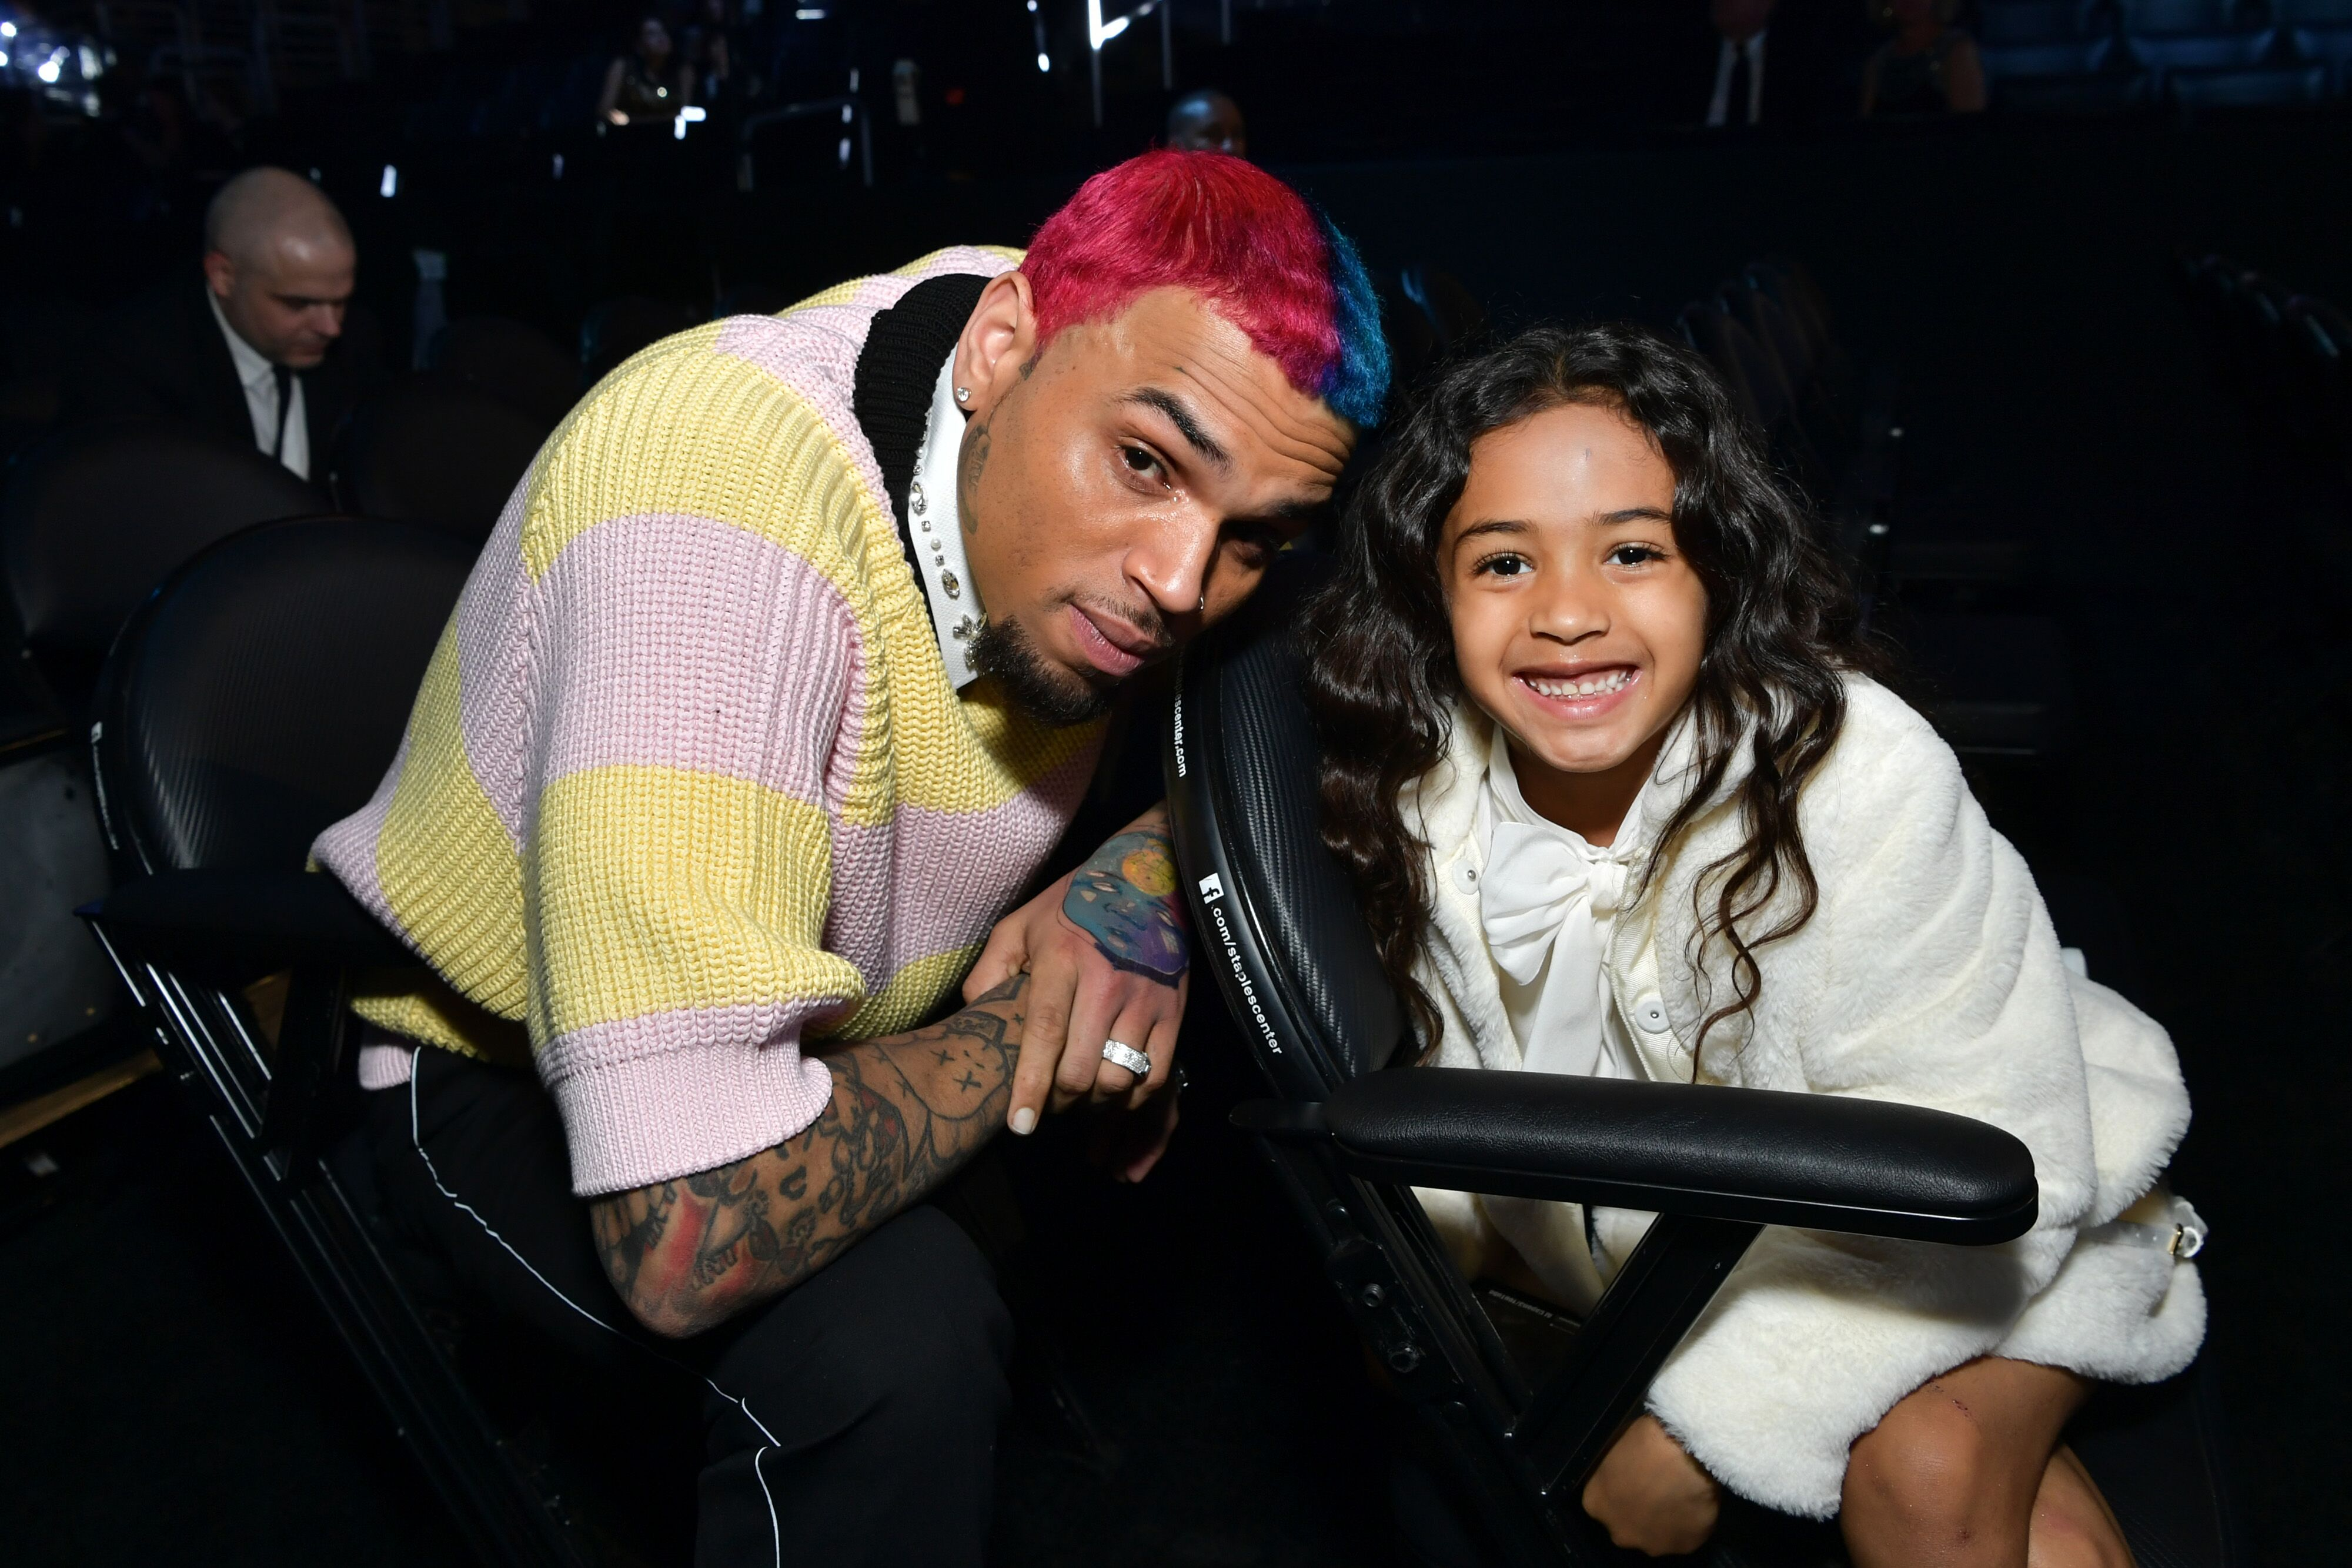 Chris Brown and daughter Royalty Brown at the 62nd Annual GRAMMY Awards in Los Angeles | Source: Getty Images